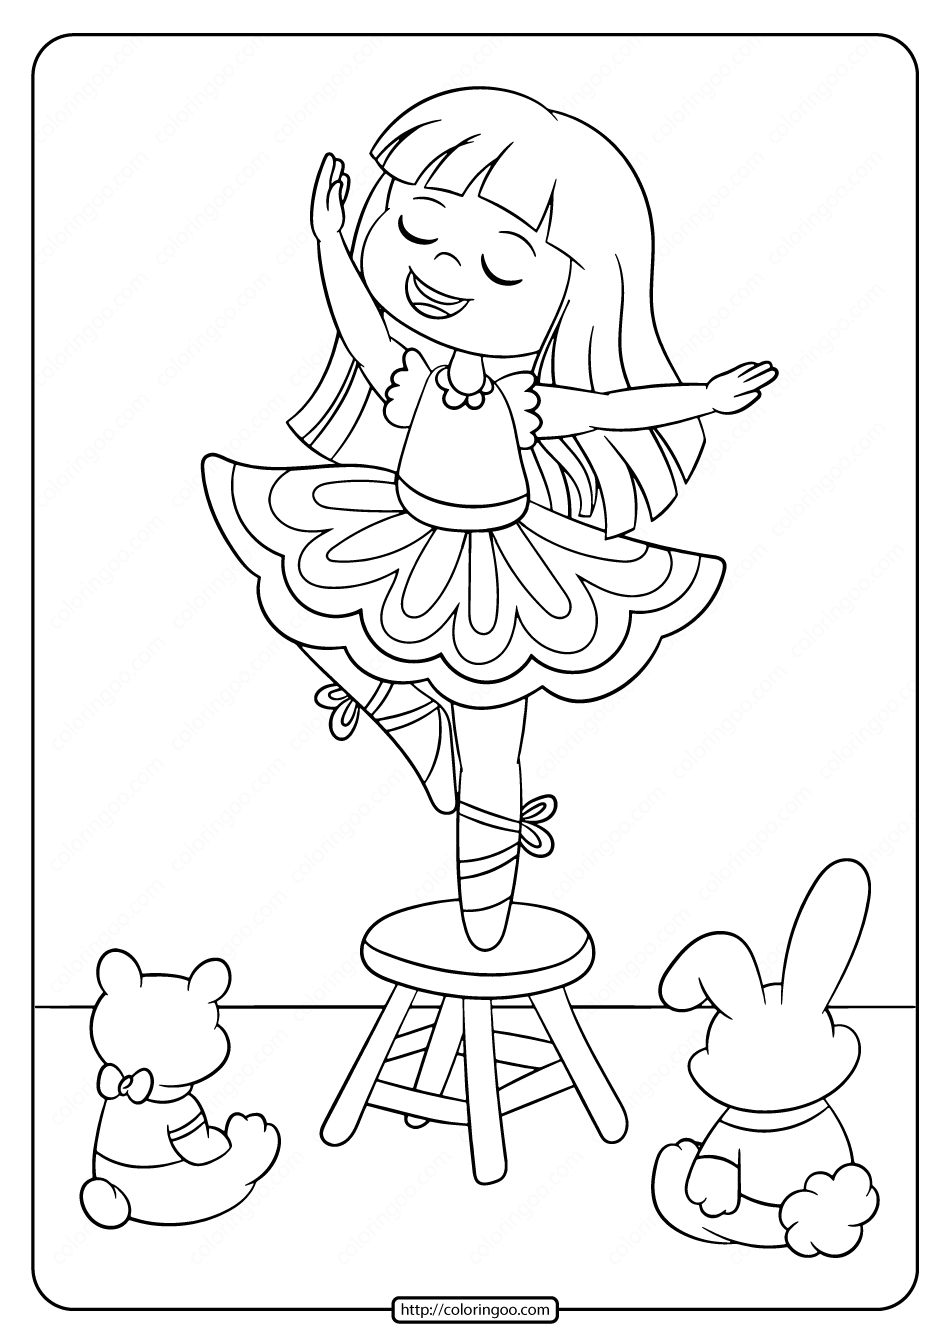 Printable Ballerina Coloring Pages for Girls